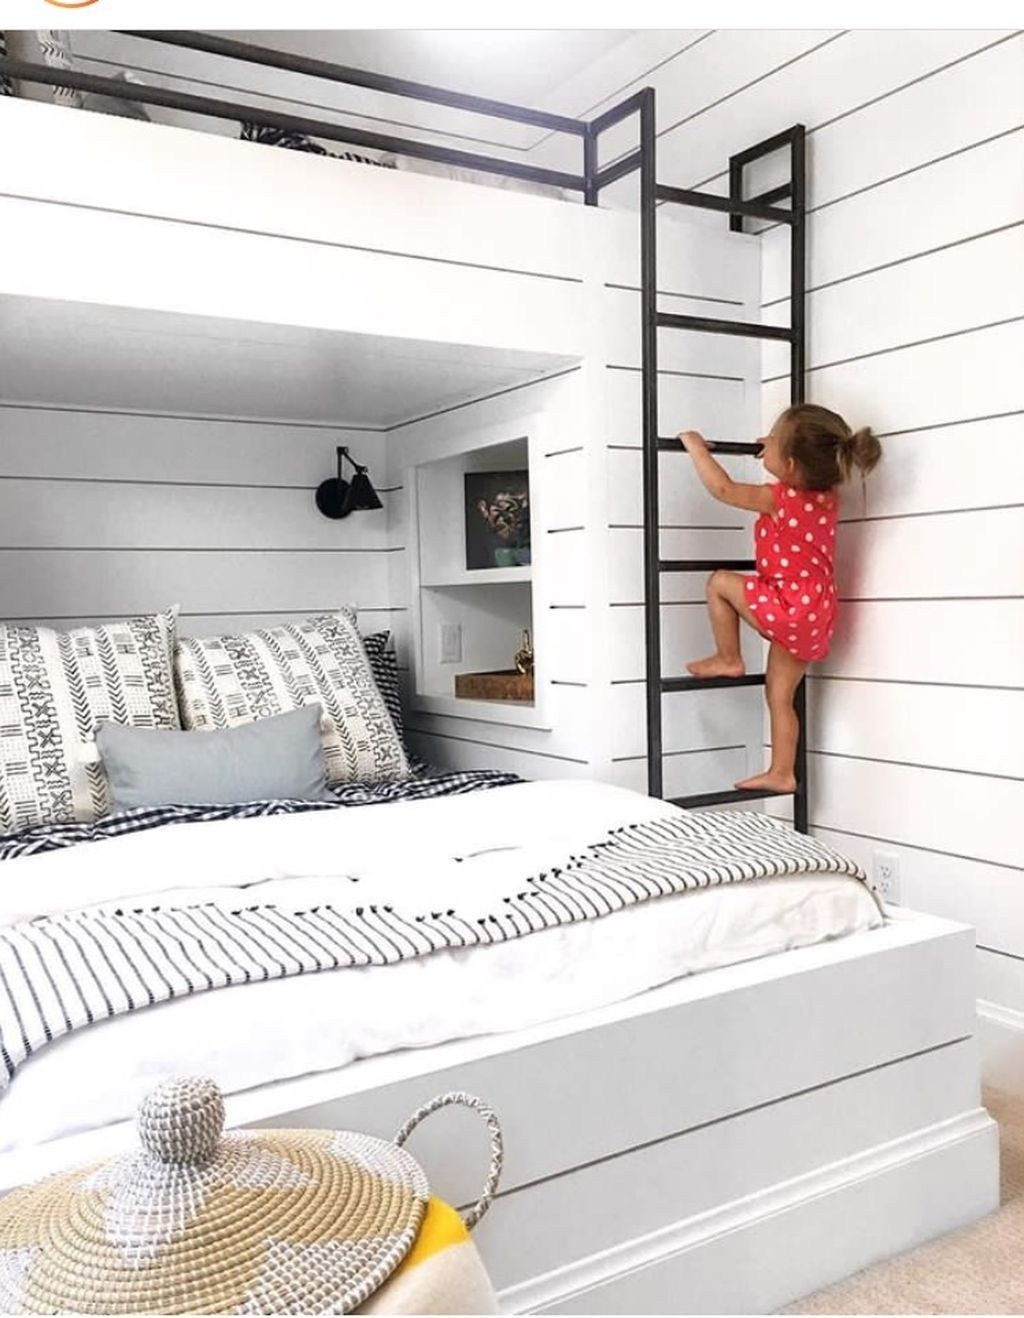 Cool And Functional Built In Bunk Beds Ideas For Kids42 images